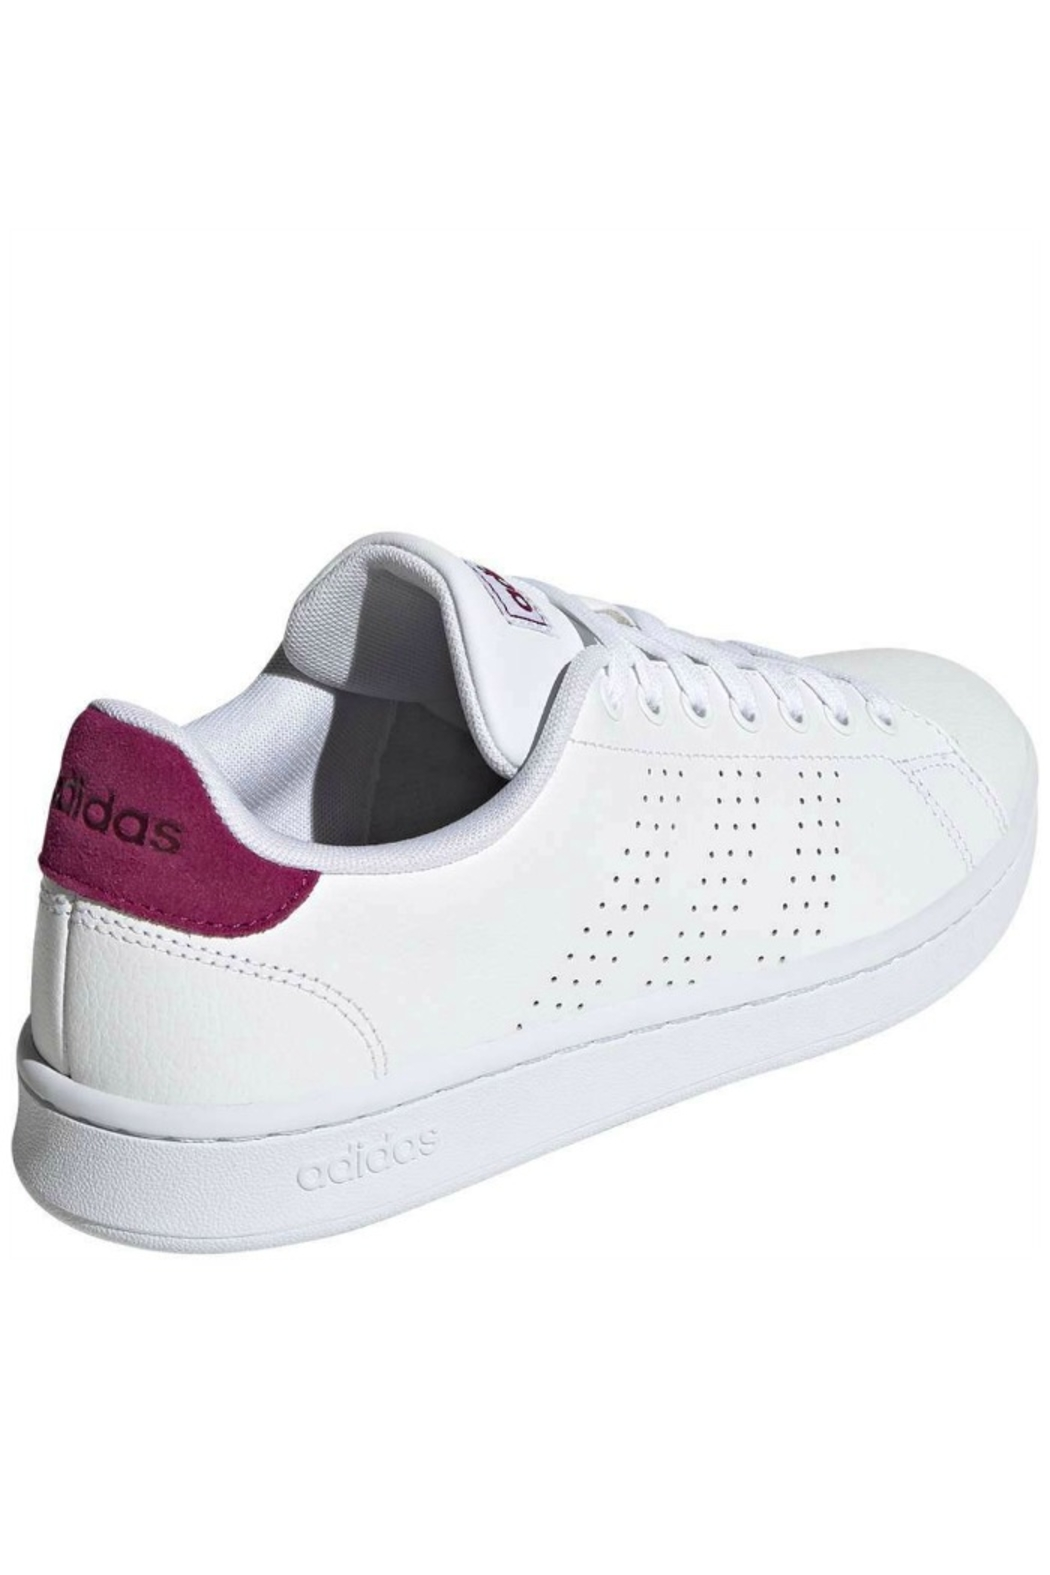 adidas Women's Adidas Advantage in White/Powder Berry - Side Cropped Image